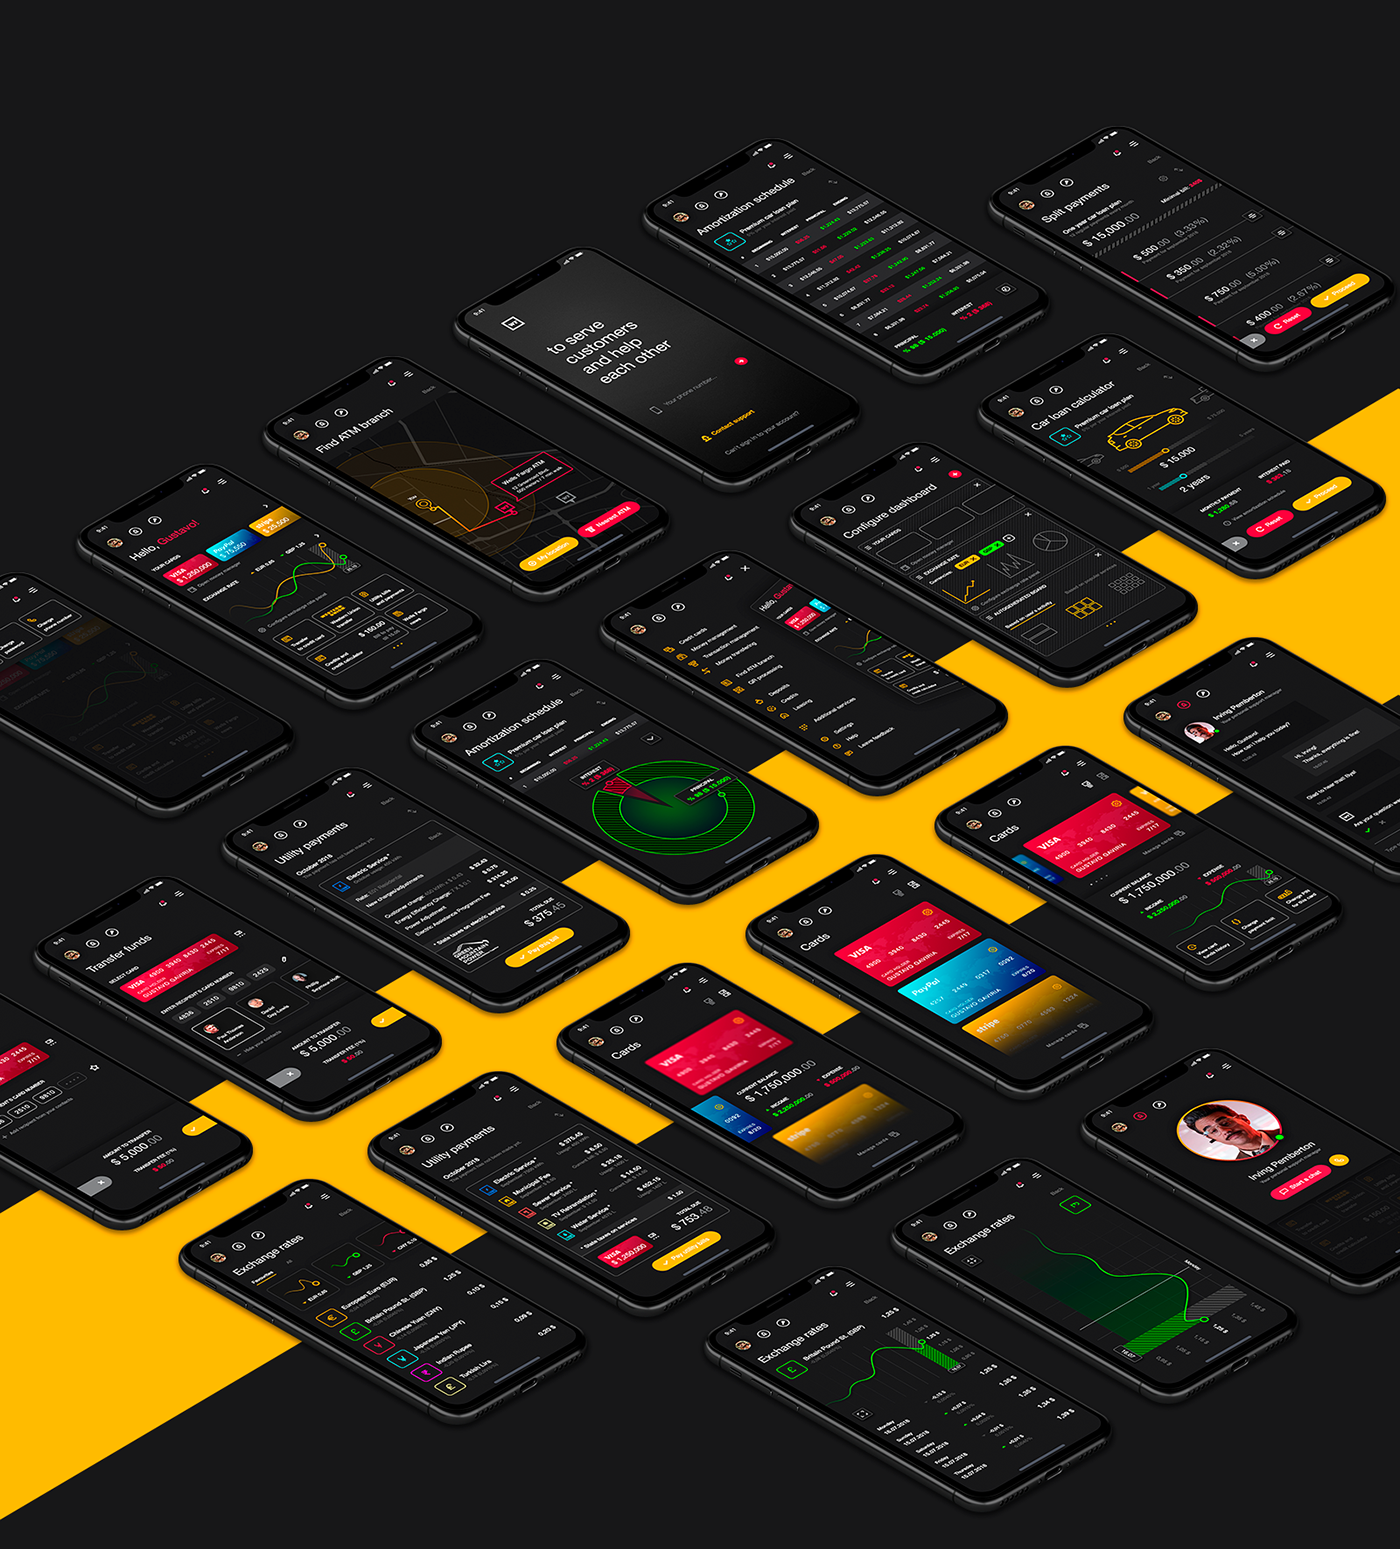 app,Bank,mobile,banking,uiux,interaction,application,ios,android,design